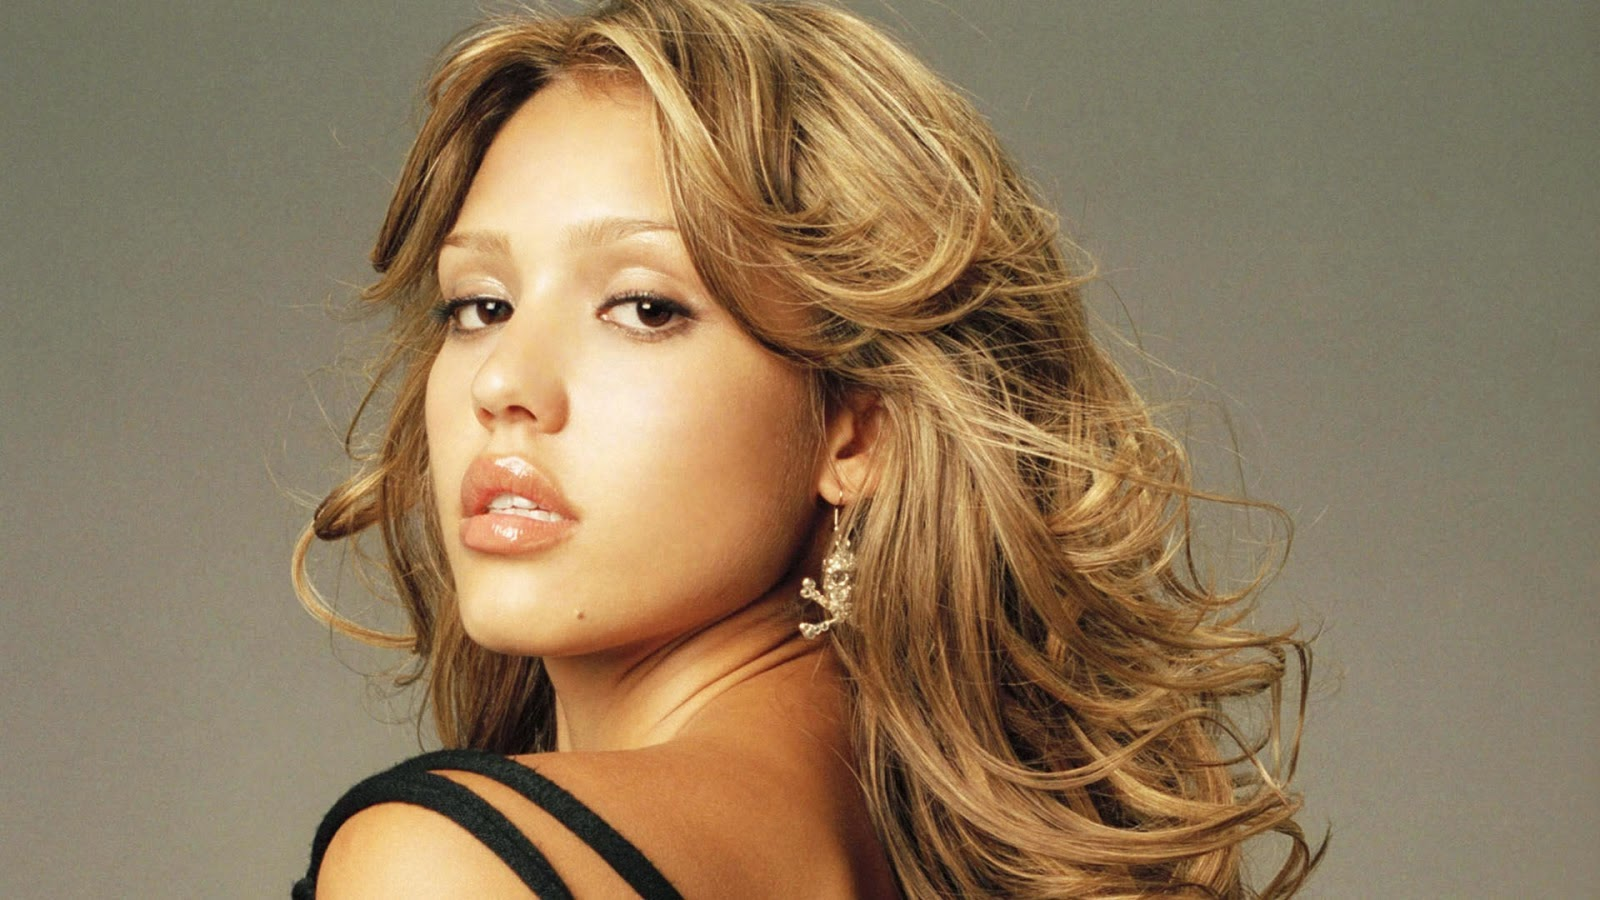 Jessica alba without cloth beautiful best wallpaper